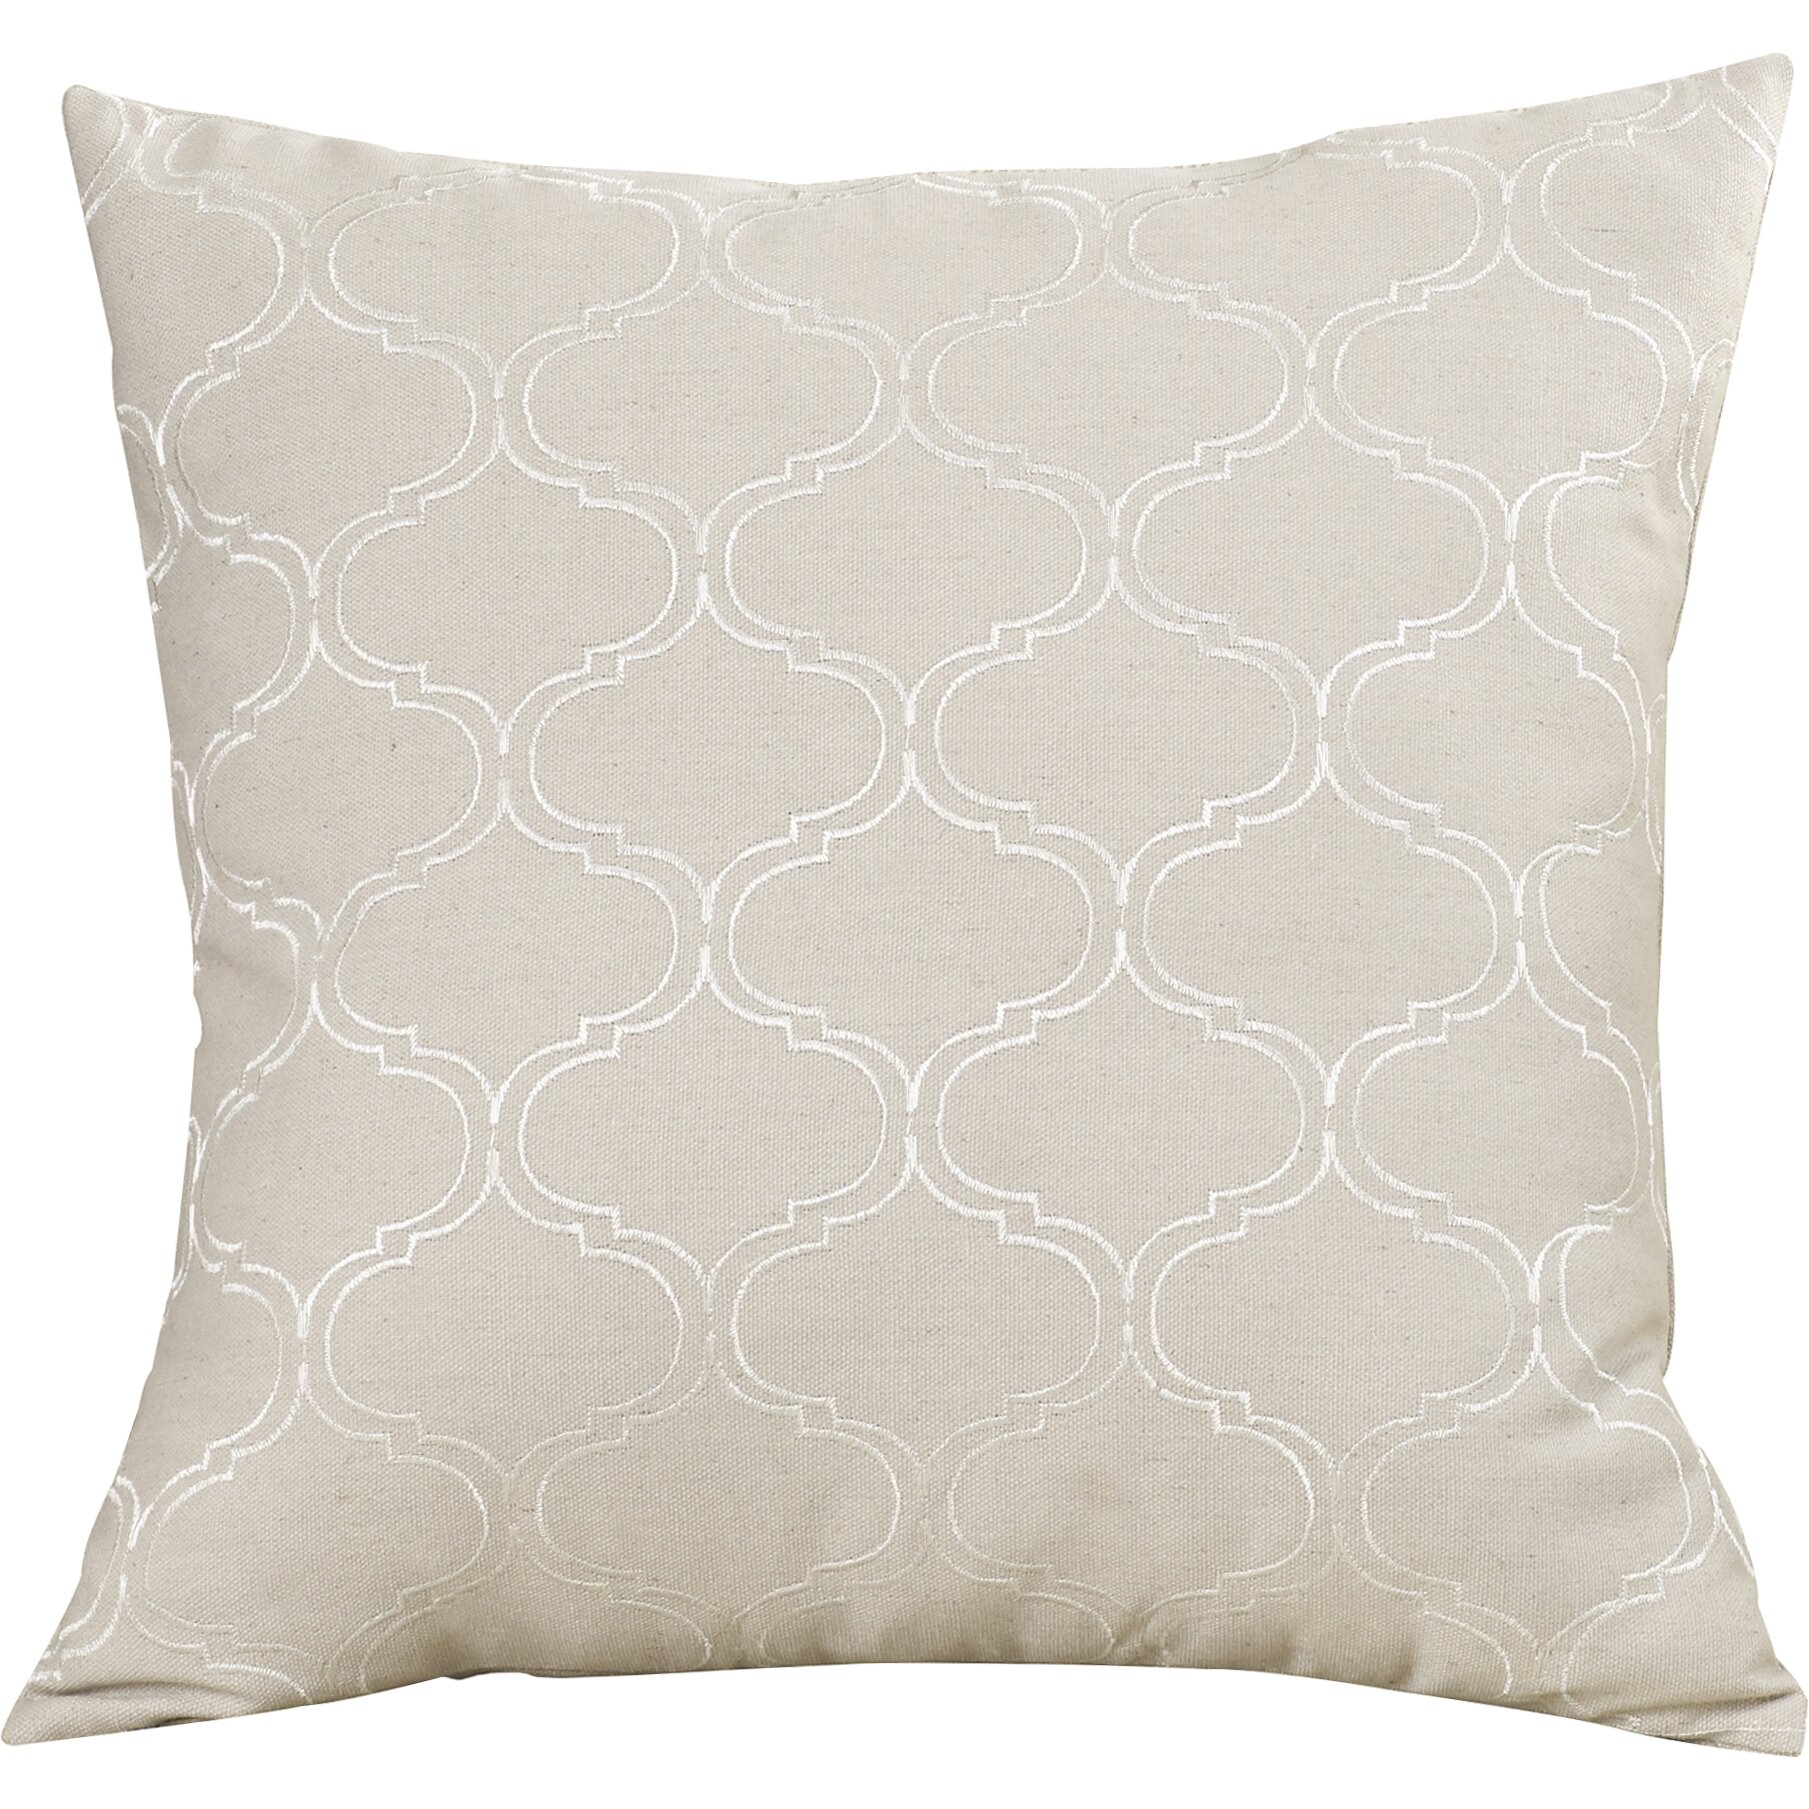 Wayfair Decorative Pillow Covers : Alcott Hill Bourneville Throw Pillow Covers & Reviews Wayfair